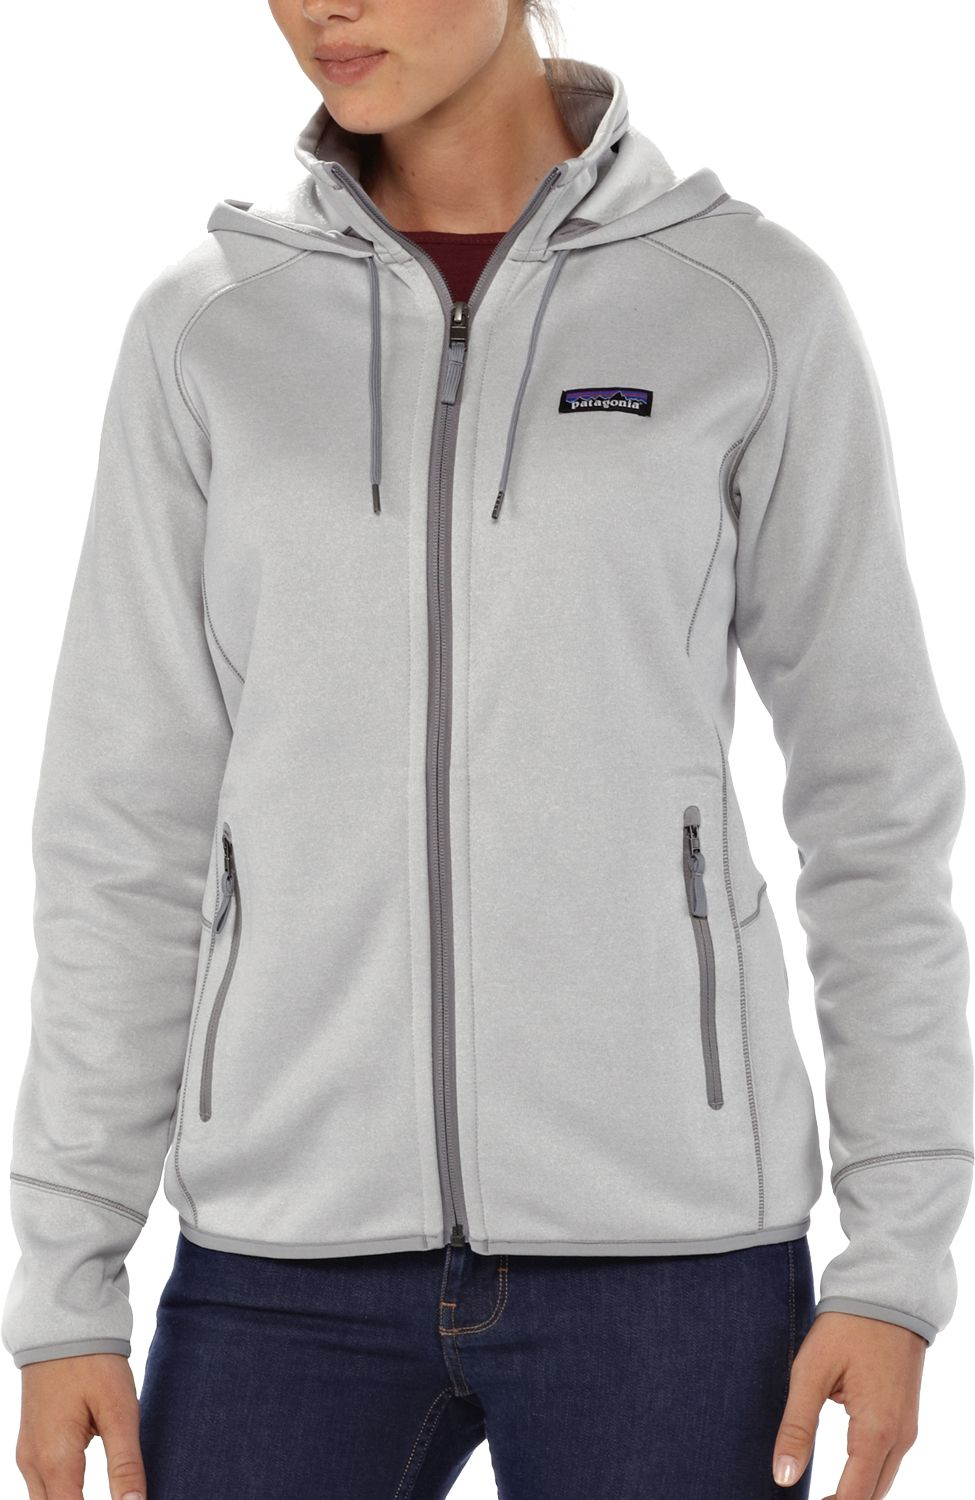 Patagonia Women's Tech Fleece Full Zip Fleece Jacket | DICK'S ...